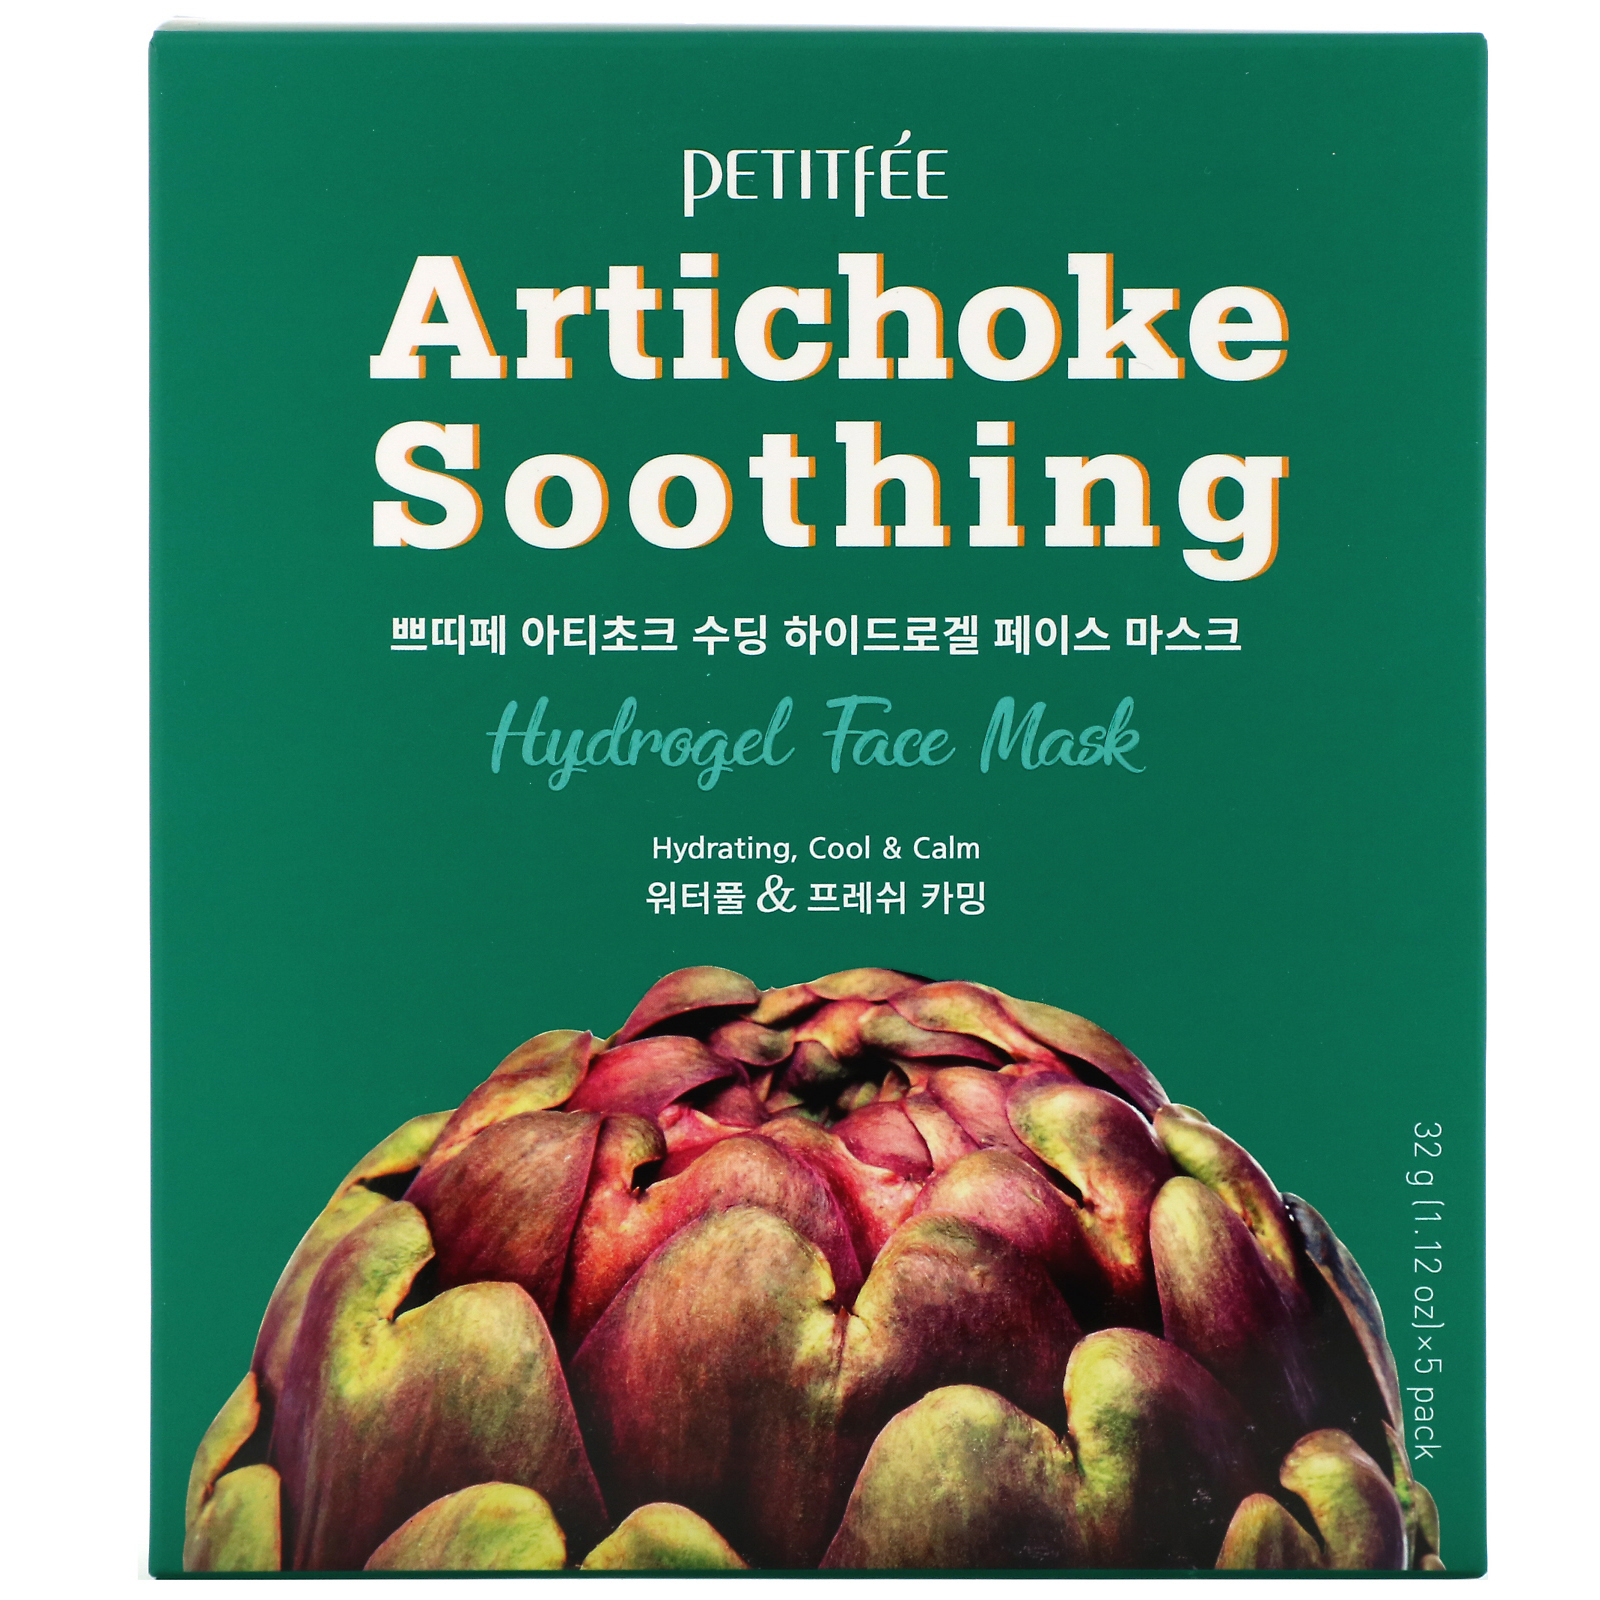 Petitfee, Artichoke Soothing, Hydrogel Face Mask, 5 Sheets, 1.12 oz (32 g) Each